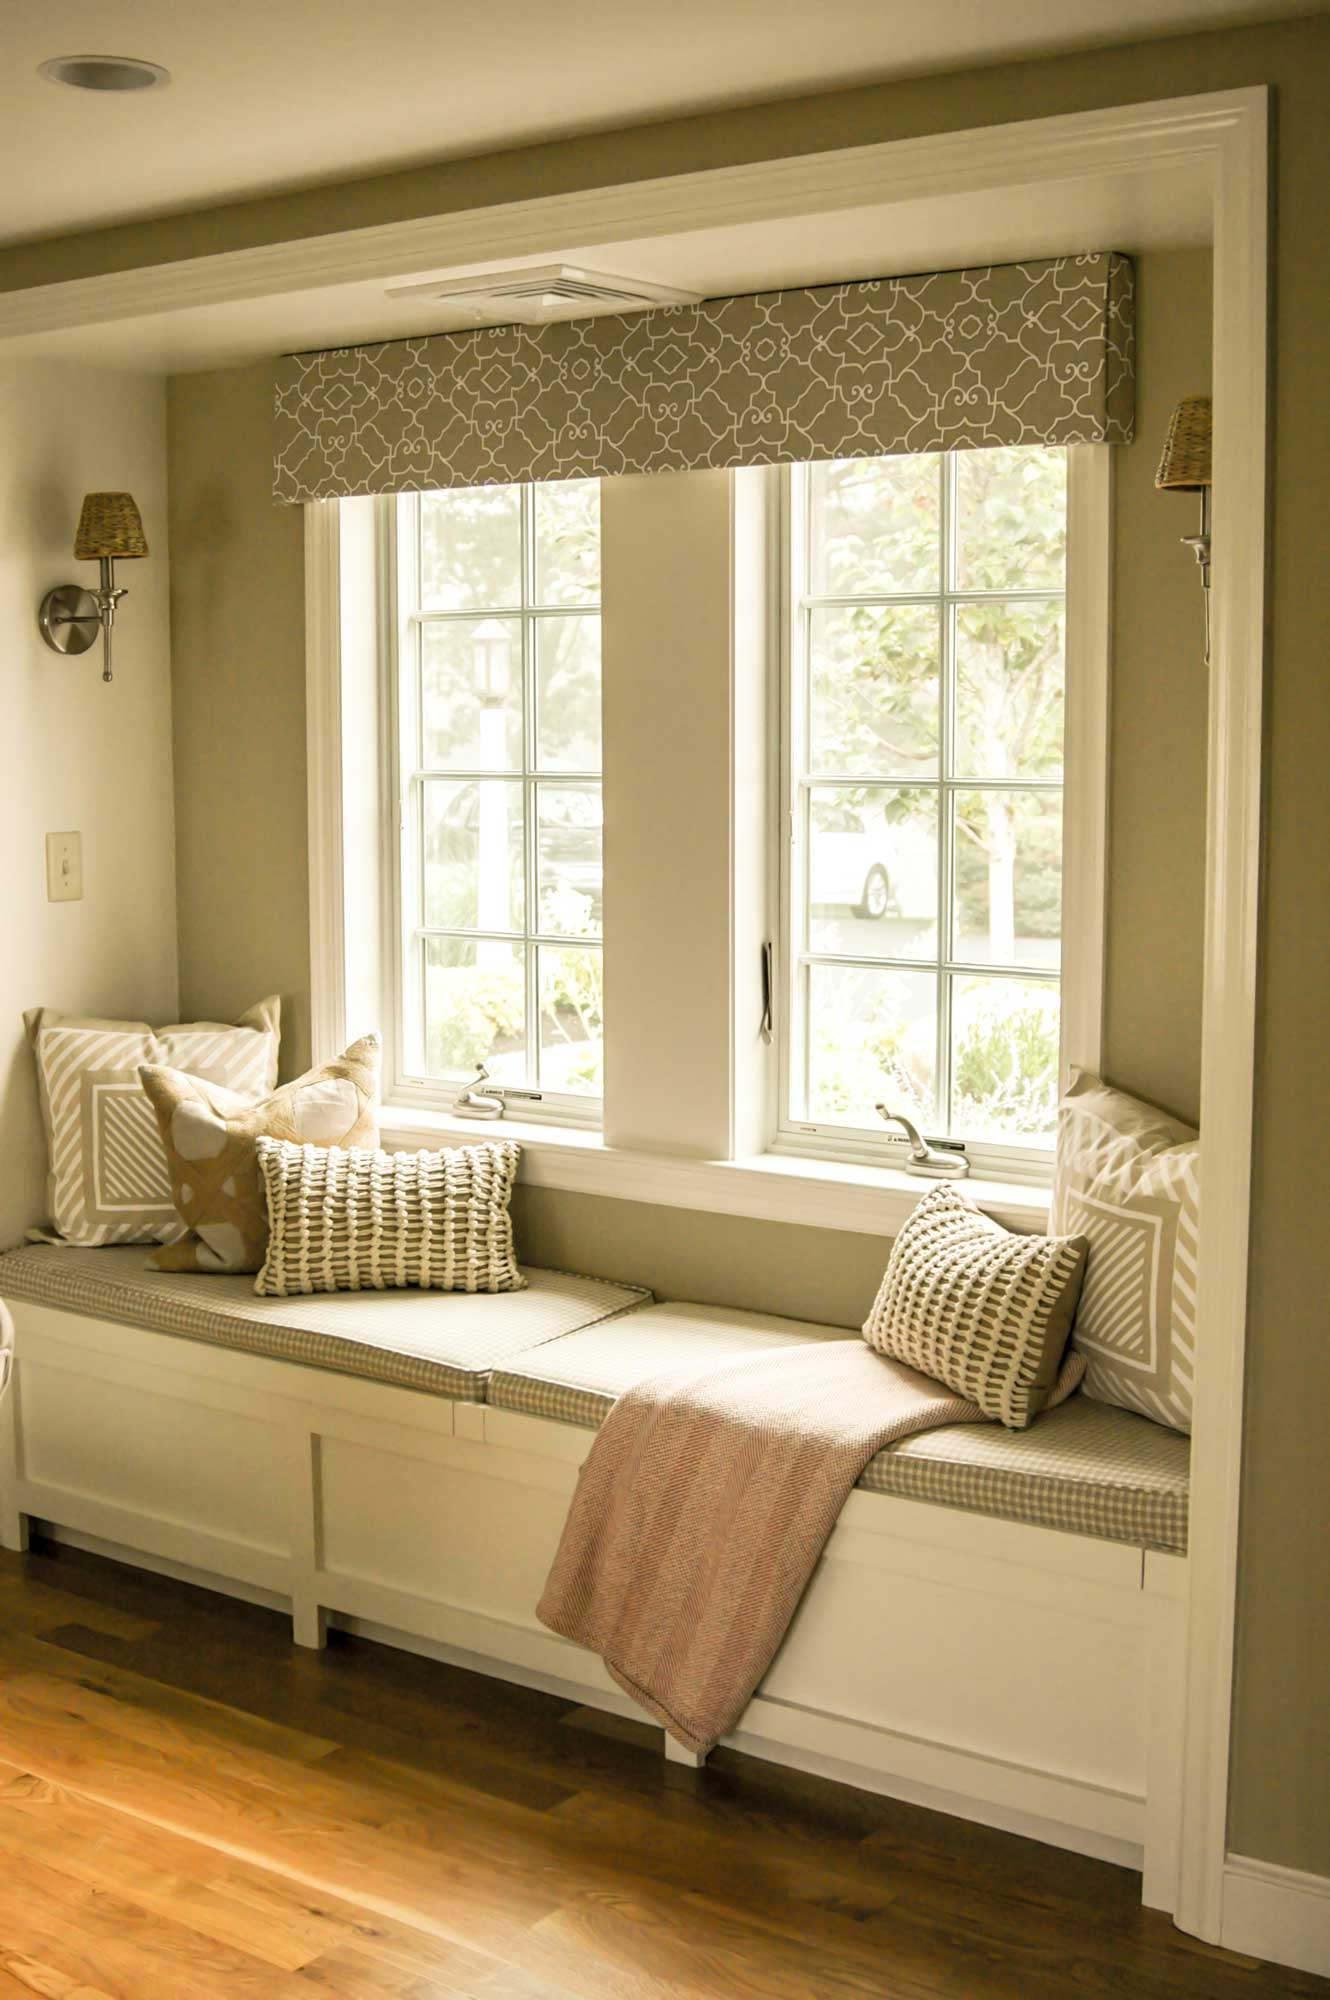 Clubhouse Window Seat Bedroom, Custom Home Construction in Southern Maine